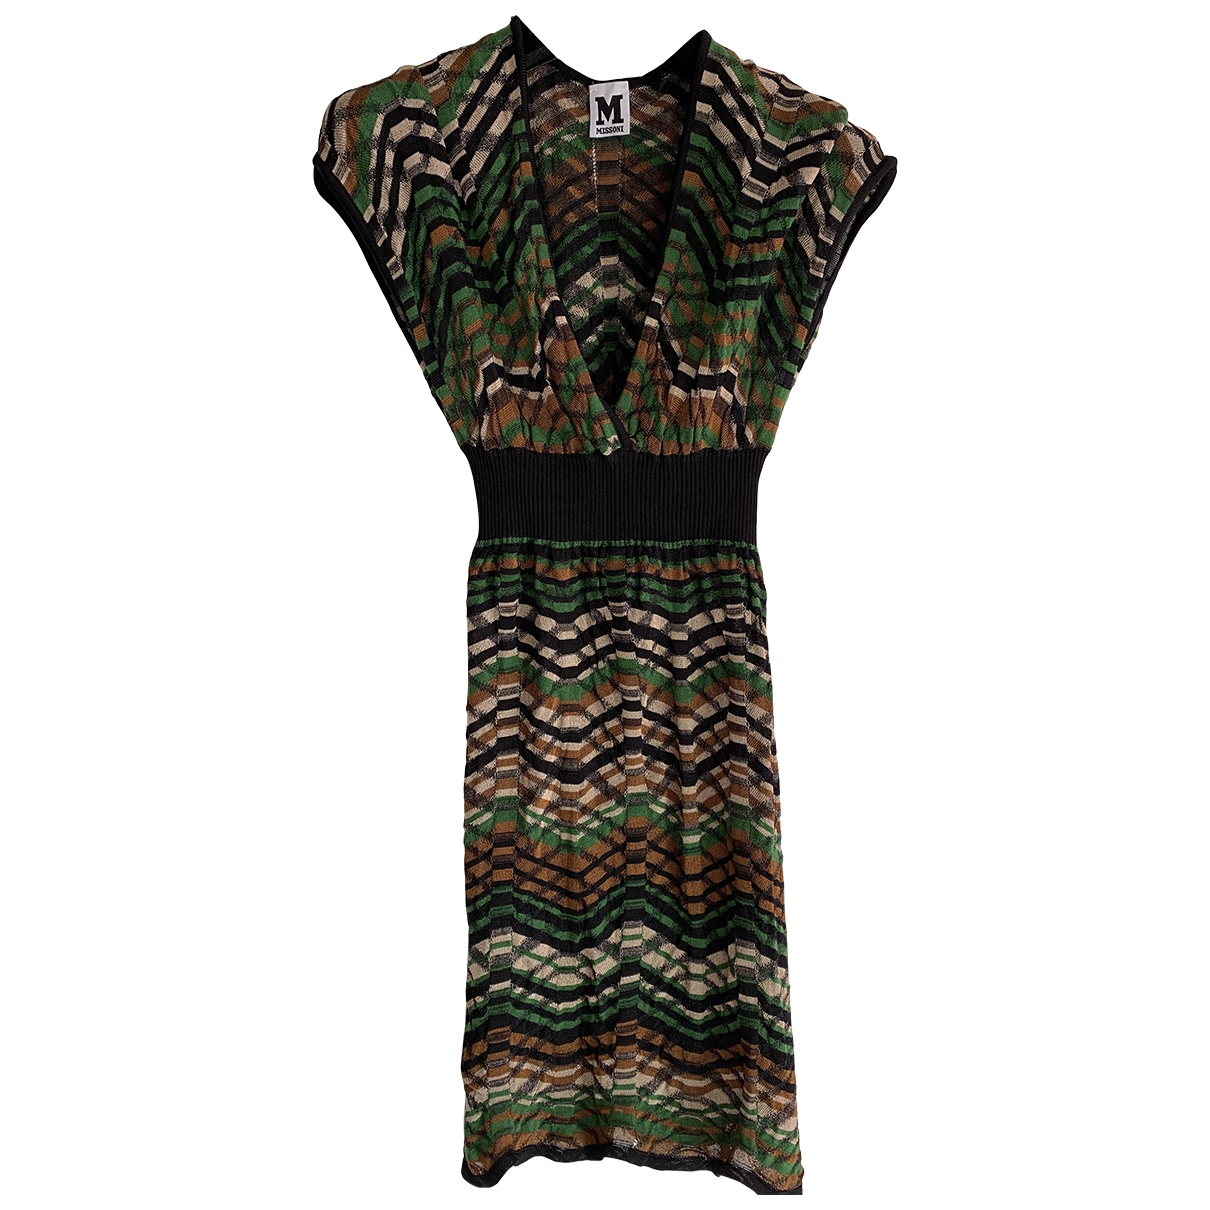 M Missoni \N dress for Women 40 IT